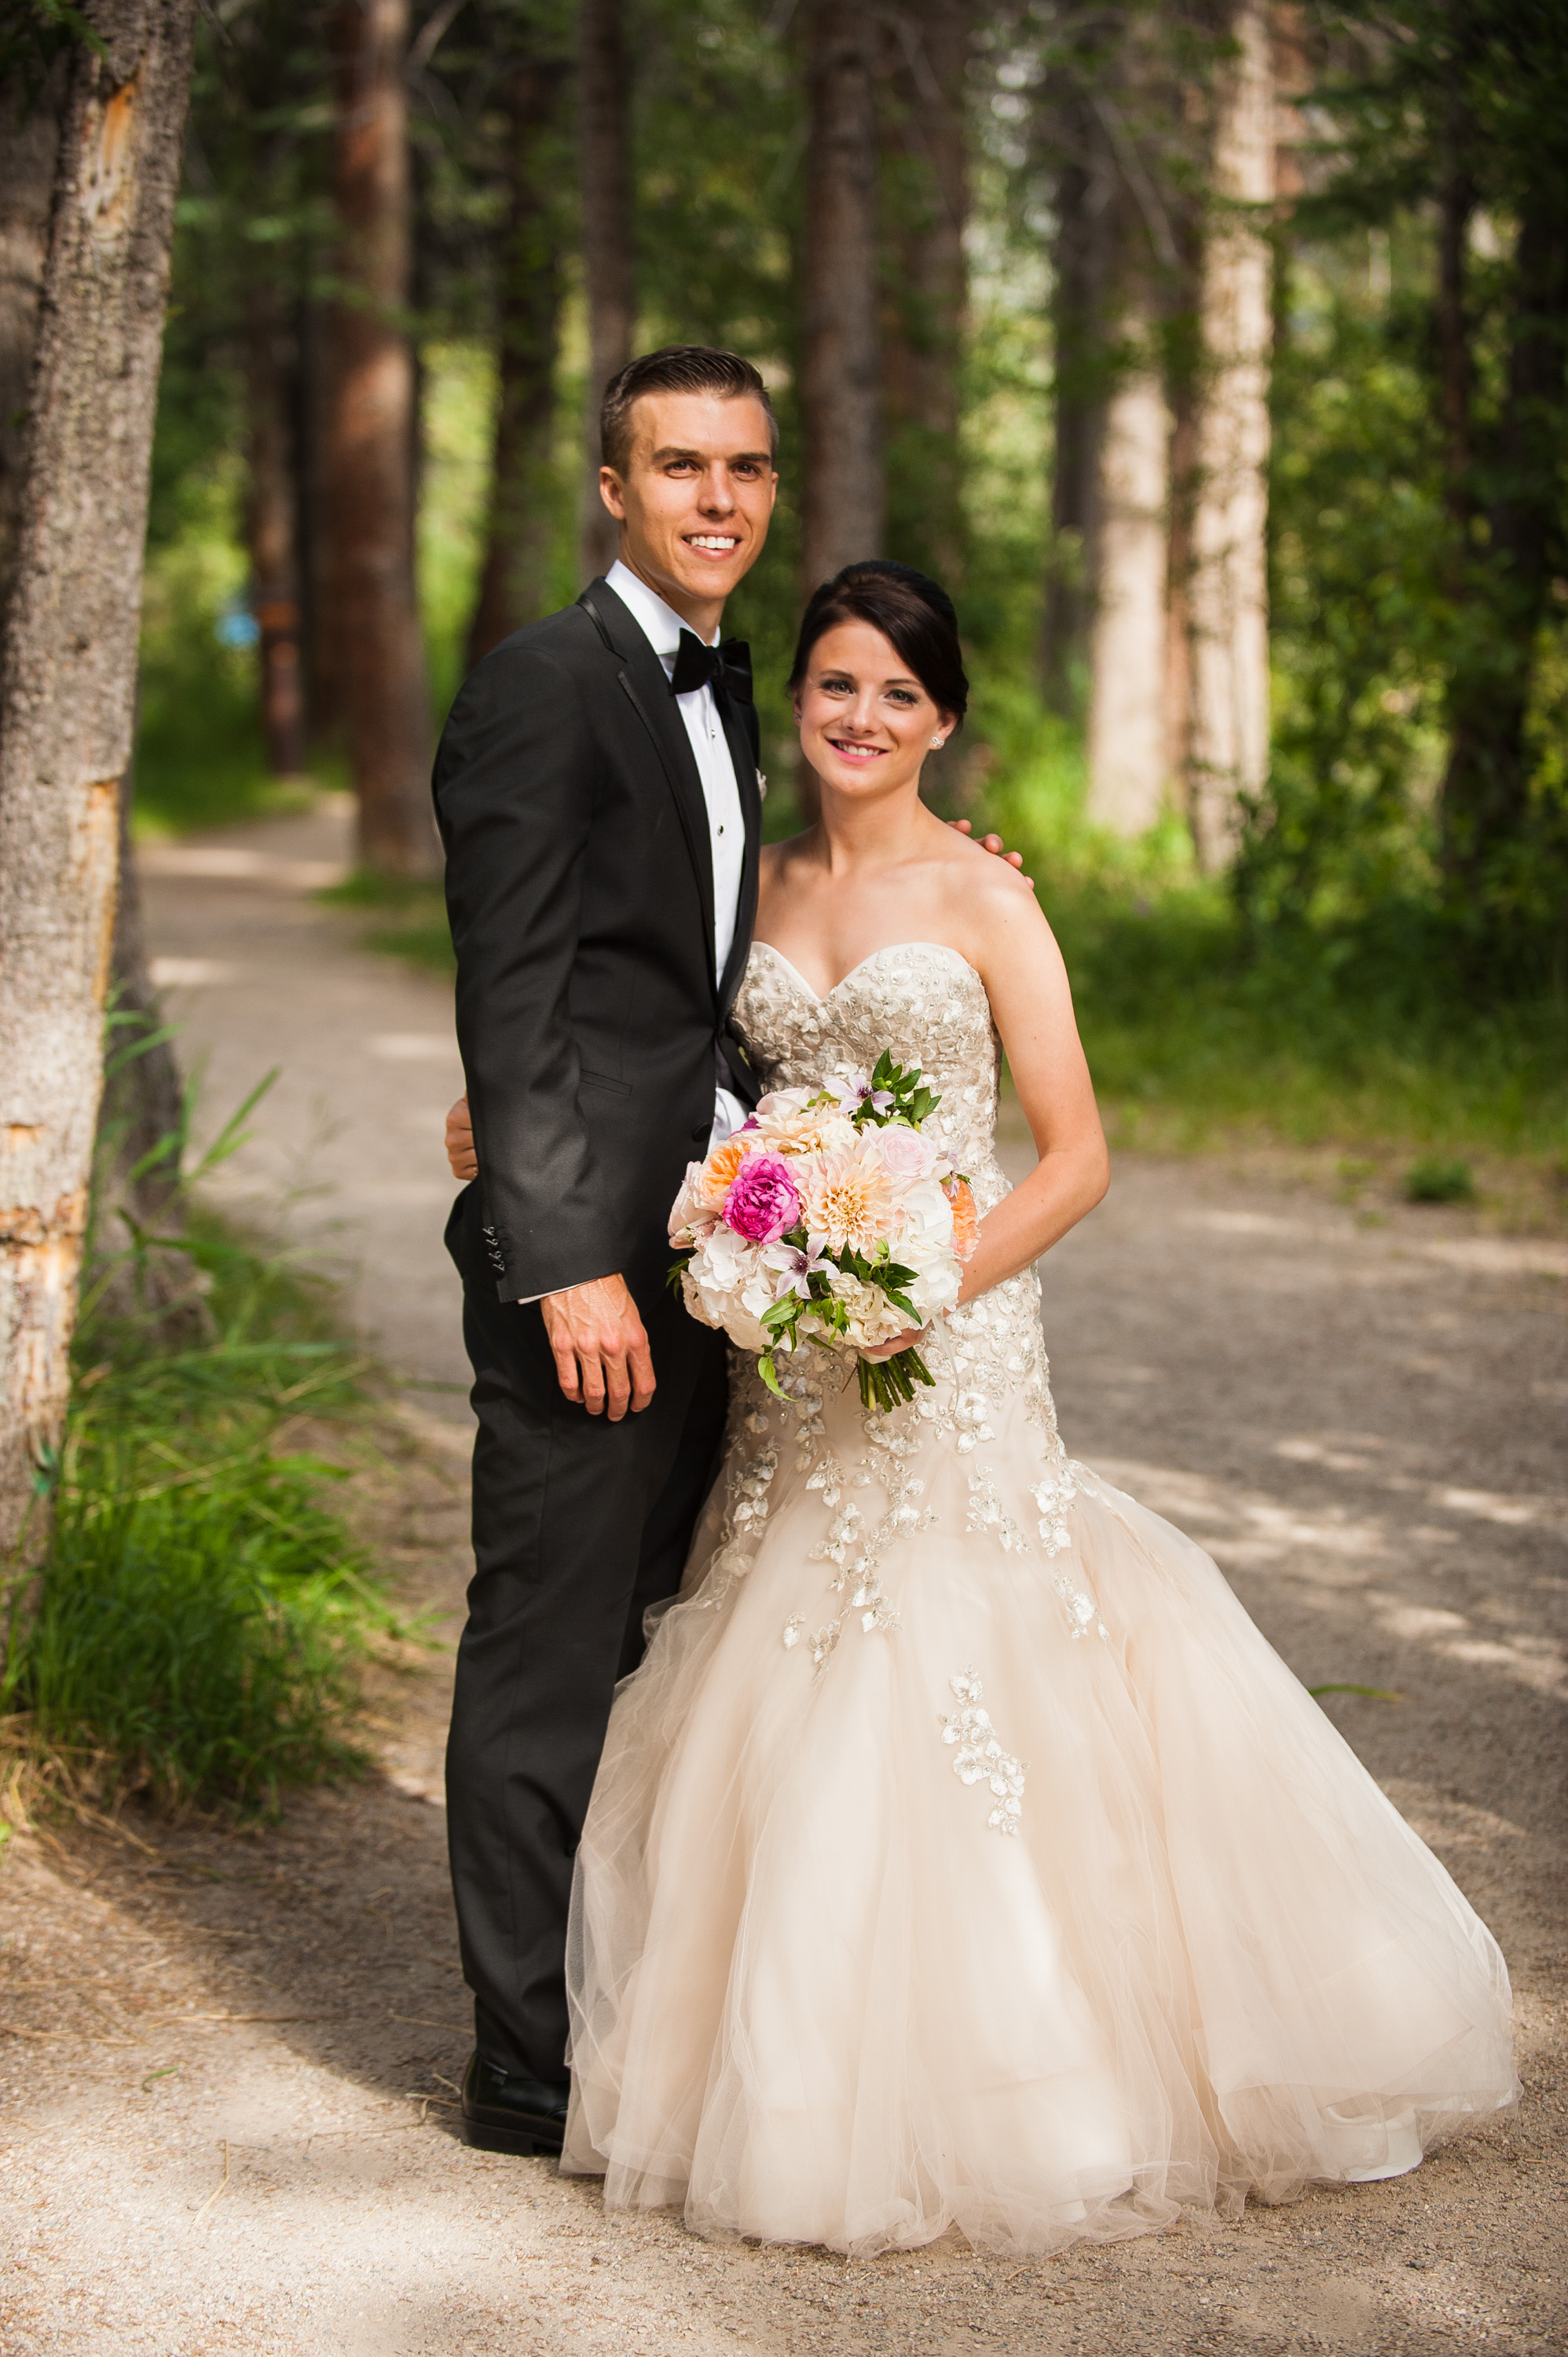 Jessica + Derek's wedding at the Four Seasons Vail | Gown by Liancarlo from Little White Dress Bridal Shop in Denver | Doug Treiber Photography